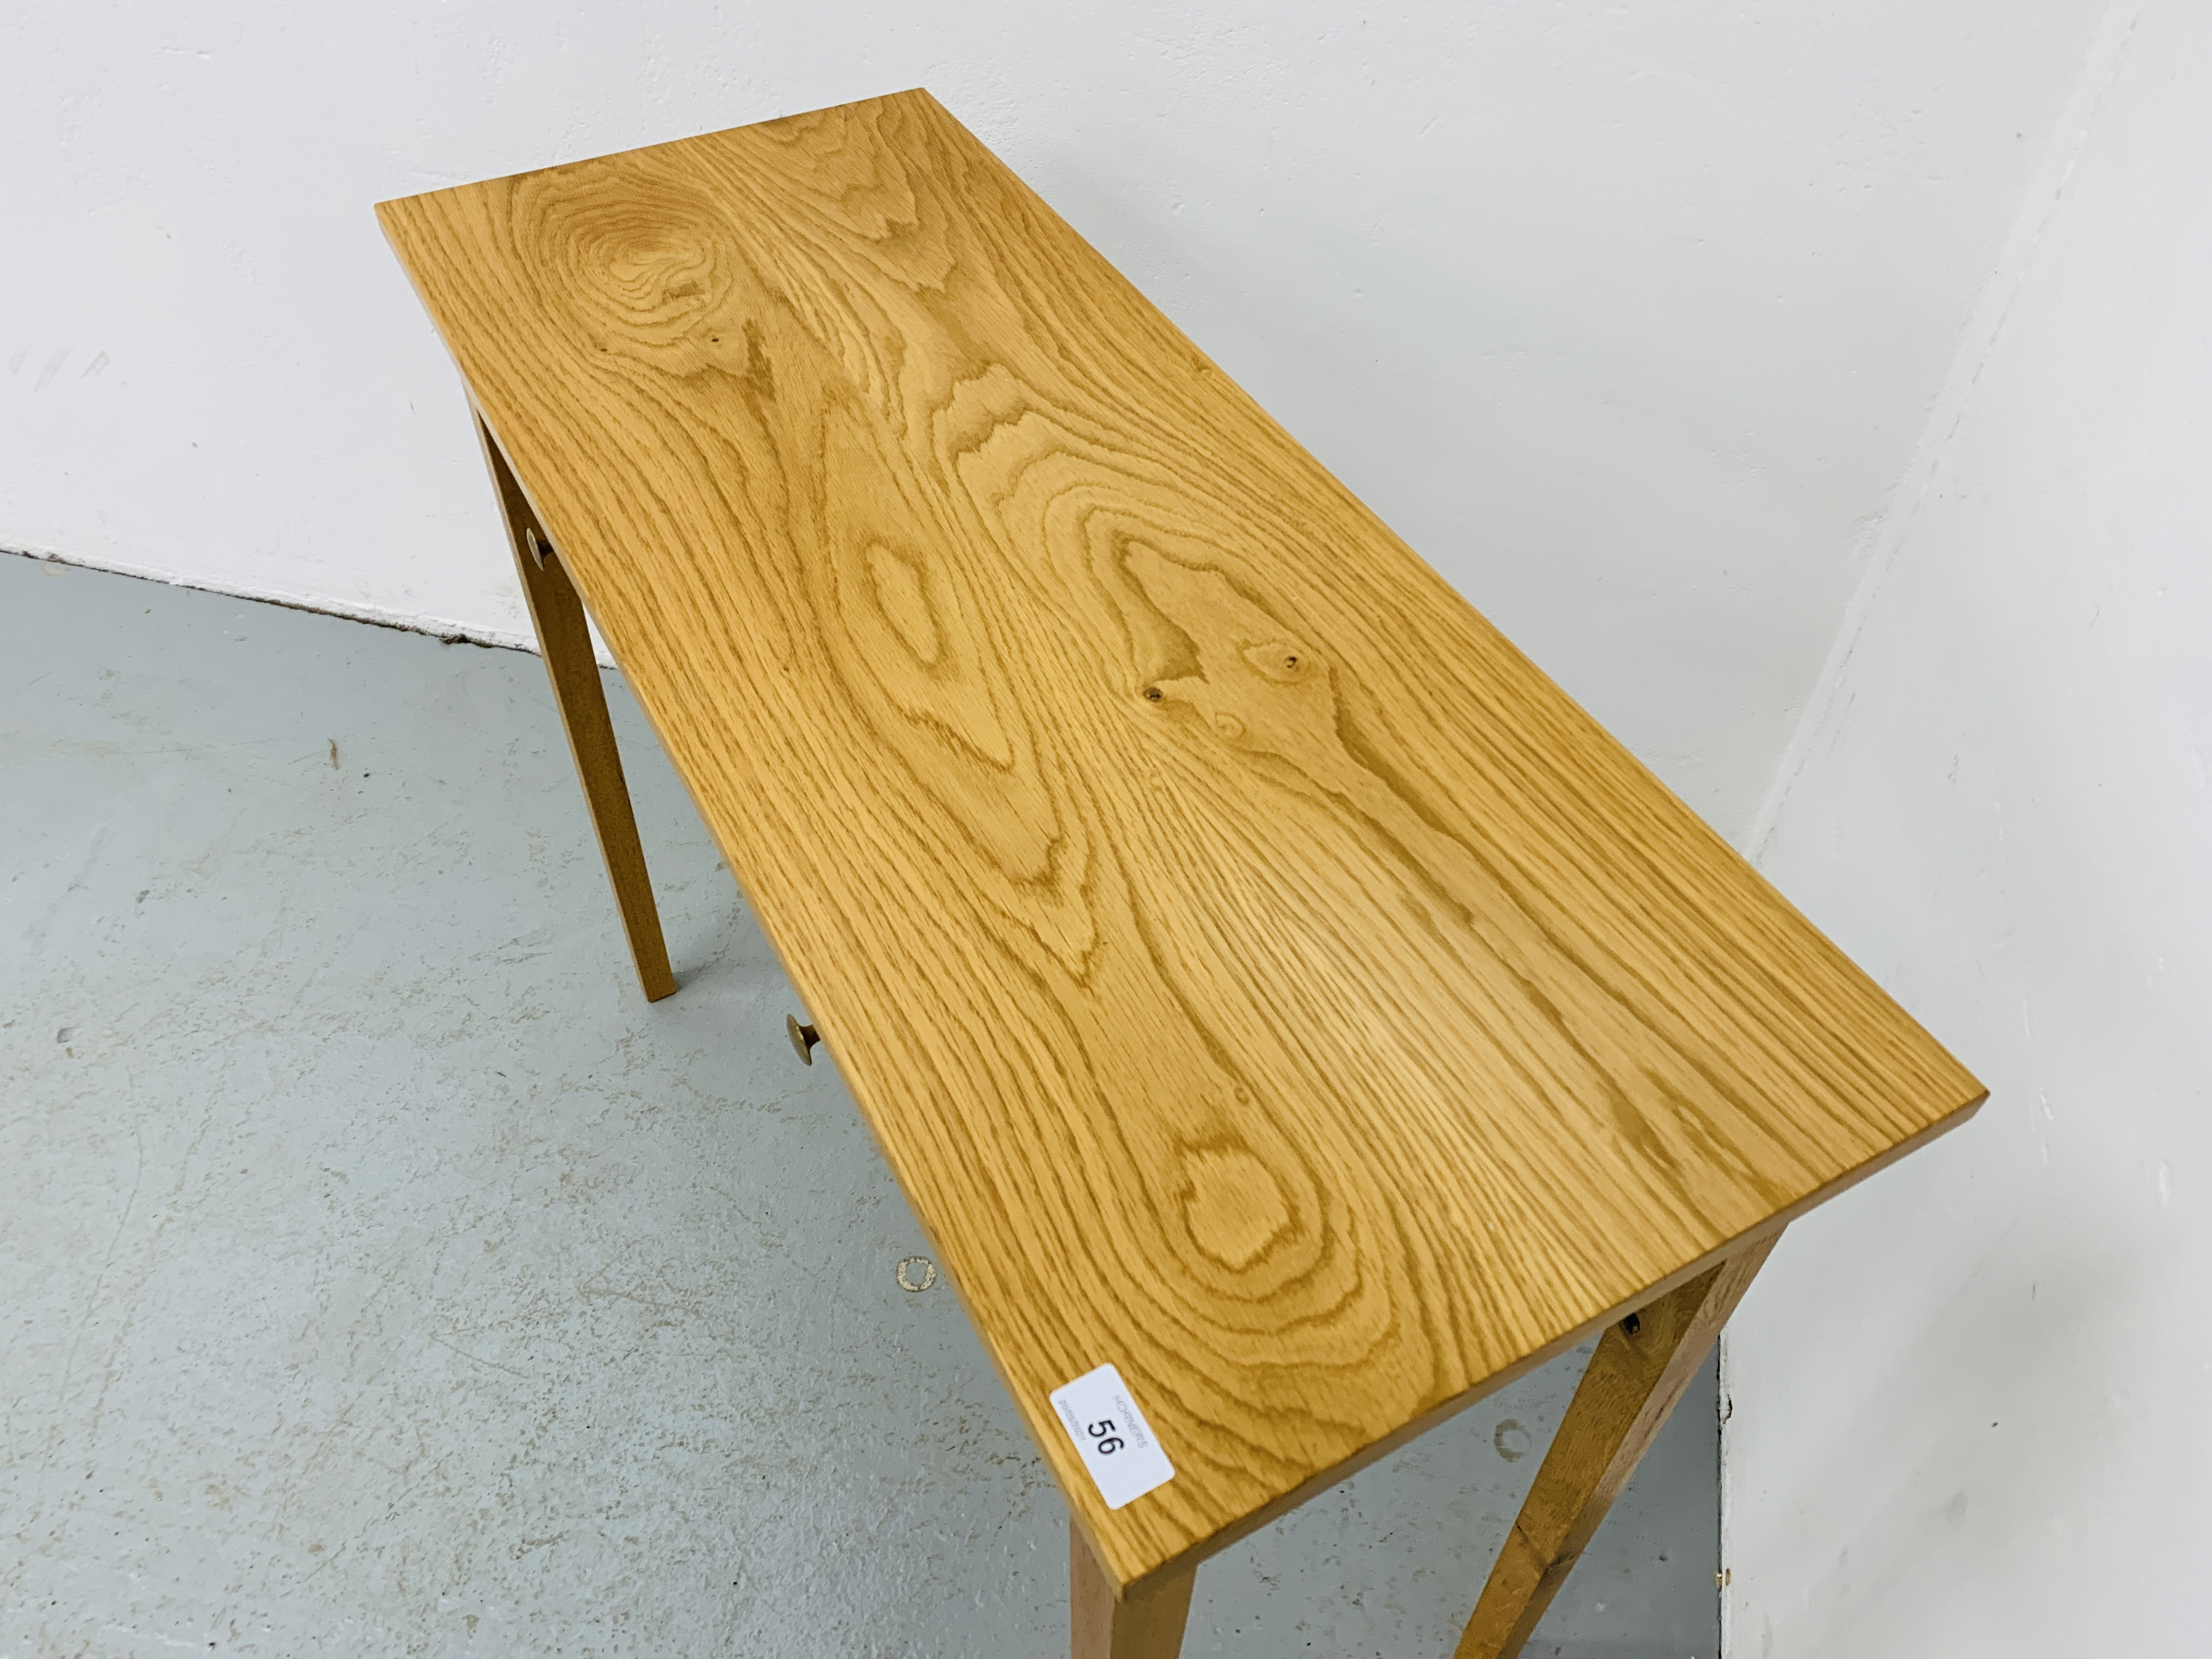 A SMALL LIGHT OAK TWO DRAWER SIDE TABLE 85CM X 34CM - Image 6 of 7